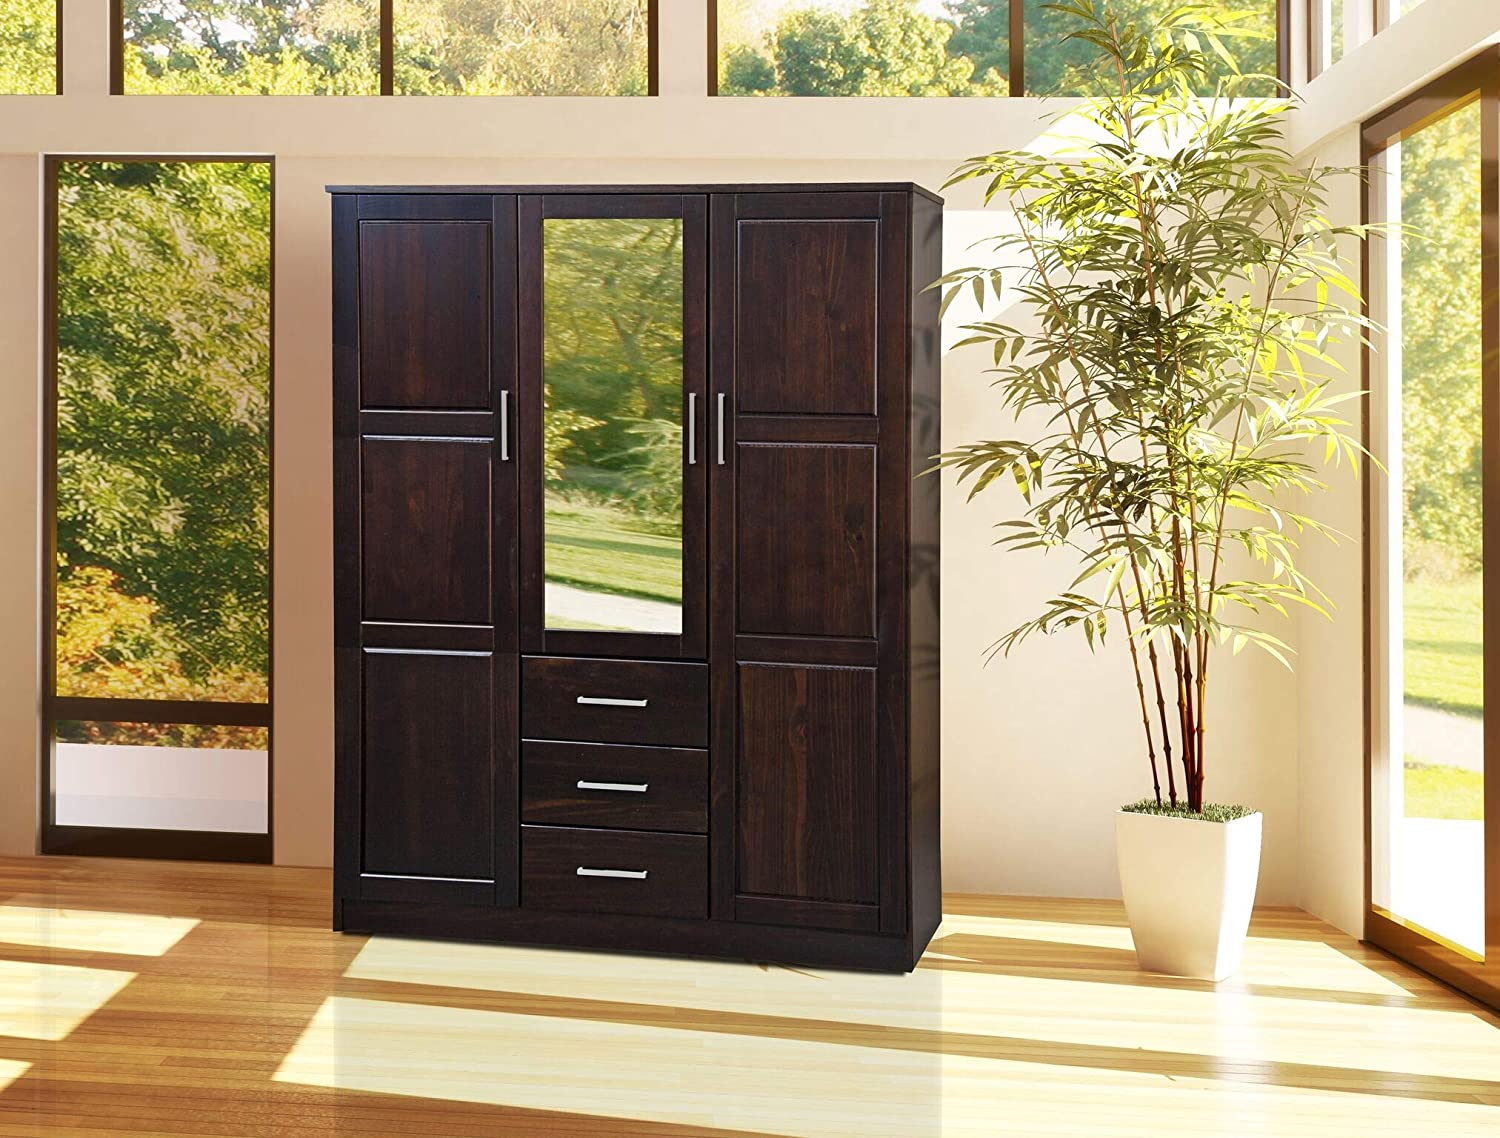 Palace Imports Cosmo Solid Pine 3-Door Wood Wardrobe/Armoire/Closet with Mirror and 3 Drawers 7116 Java 56' w x 21' d x 72' h. Optional Additional Shelves Sold Separately. Requires Assembly.